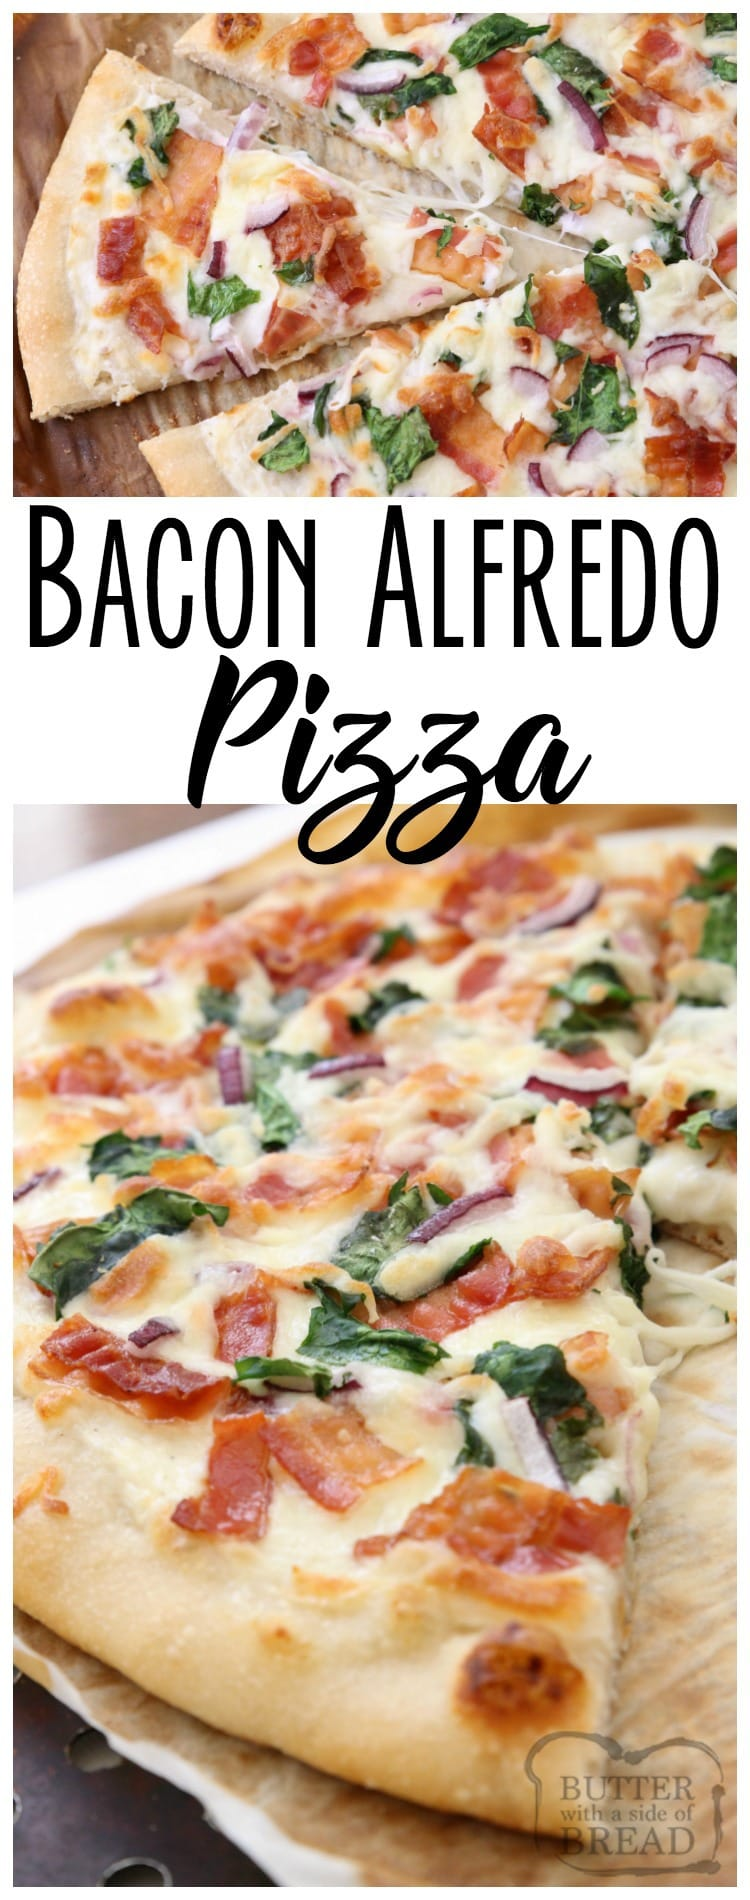 Bacon Alfredo Pizza baked fresh and full of flavor! Easy pizza recipe made with Alfredo sauce, bacon, red onion, spinach and lots of mozzarella cheese. Easy #bacon #pizza recipe from Butter With A Side of Bread